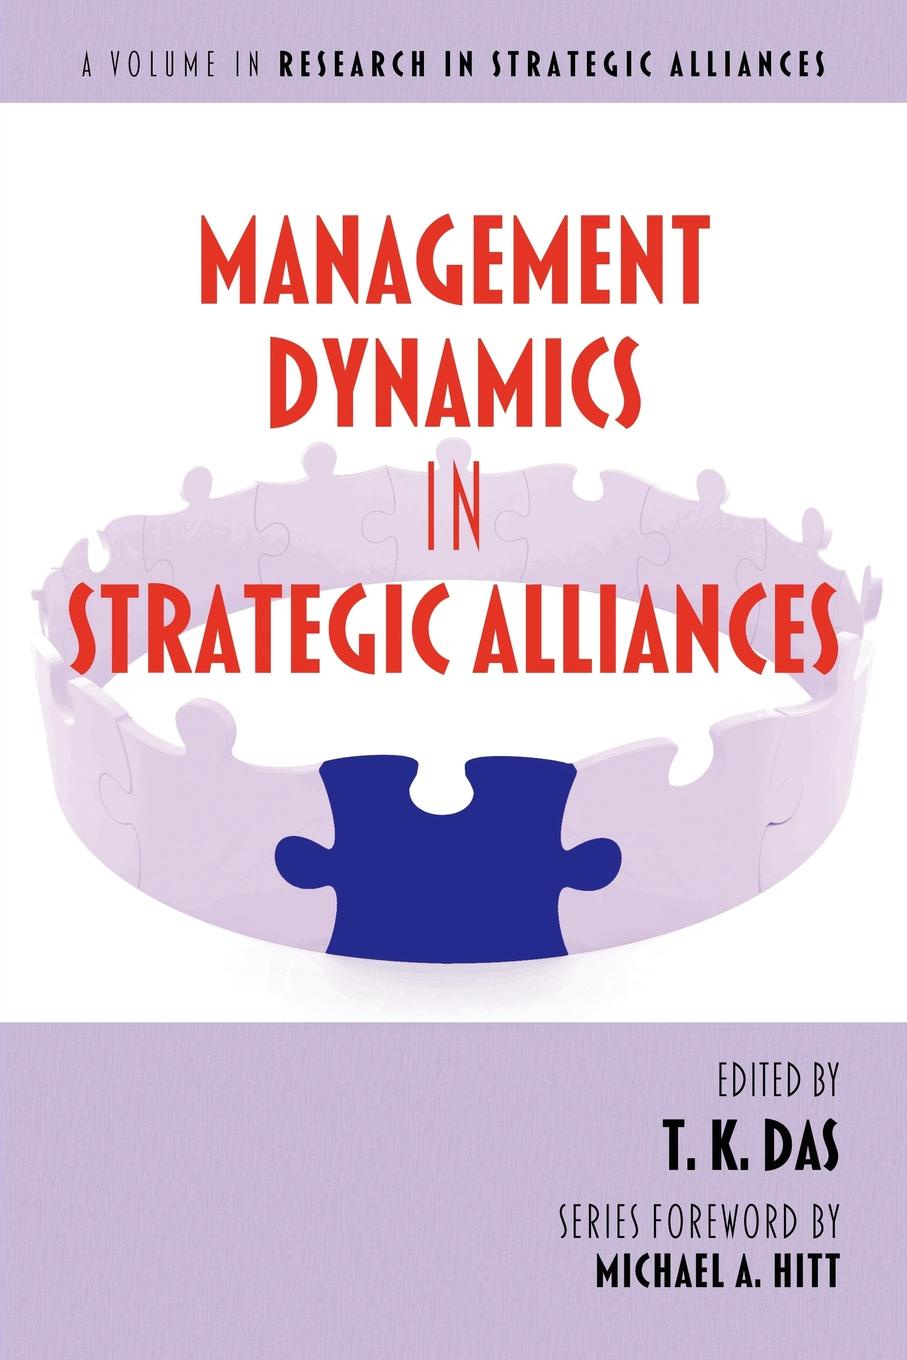 Management Dynamics in Strategic Alliances juan stegmann pablo strategic value management stock value creation and the management of the firm